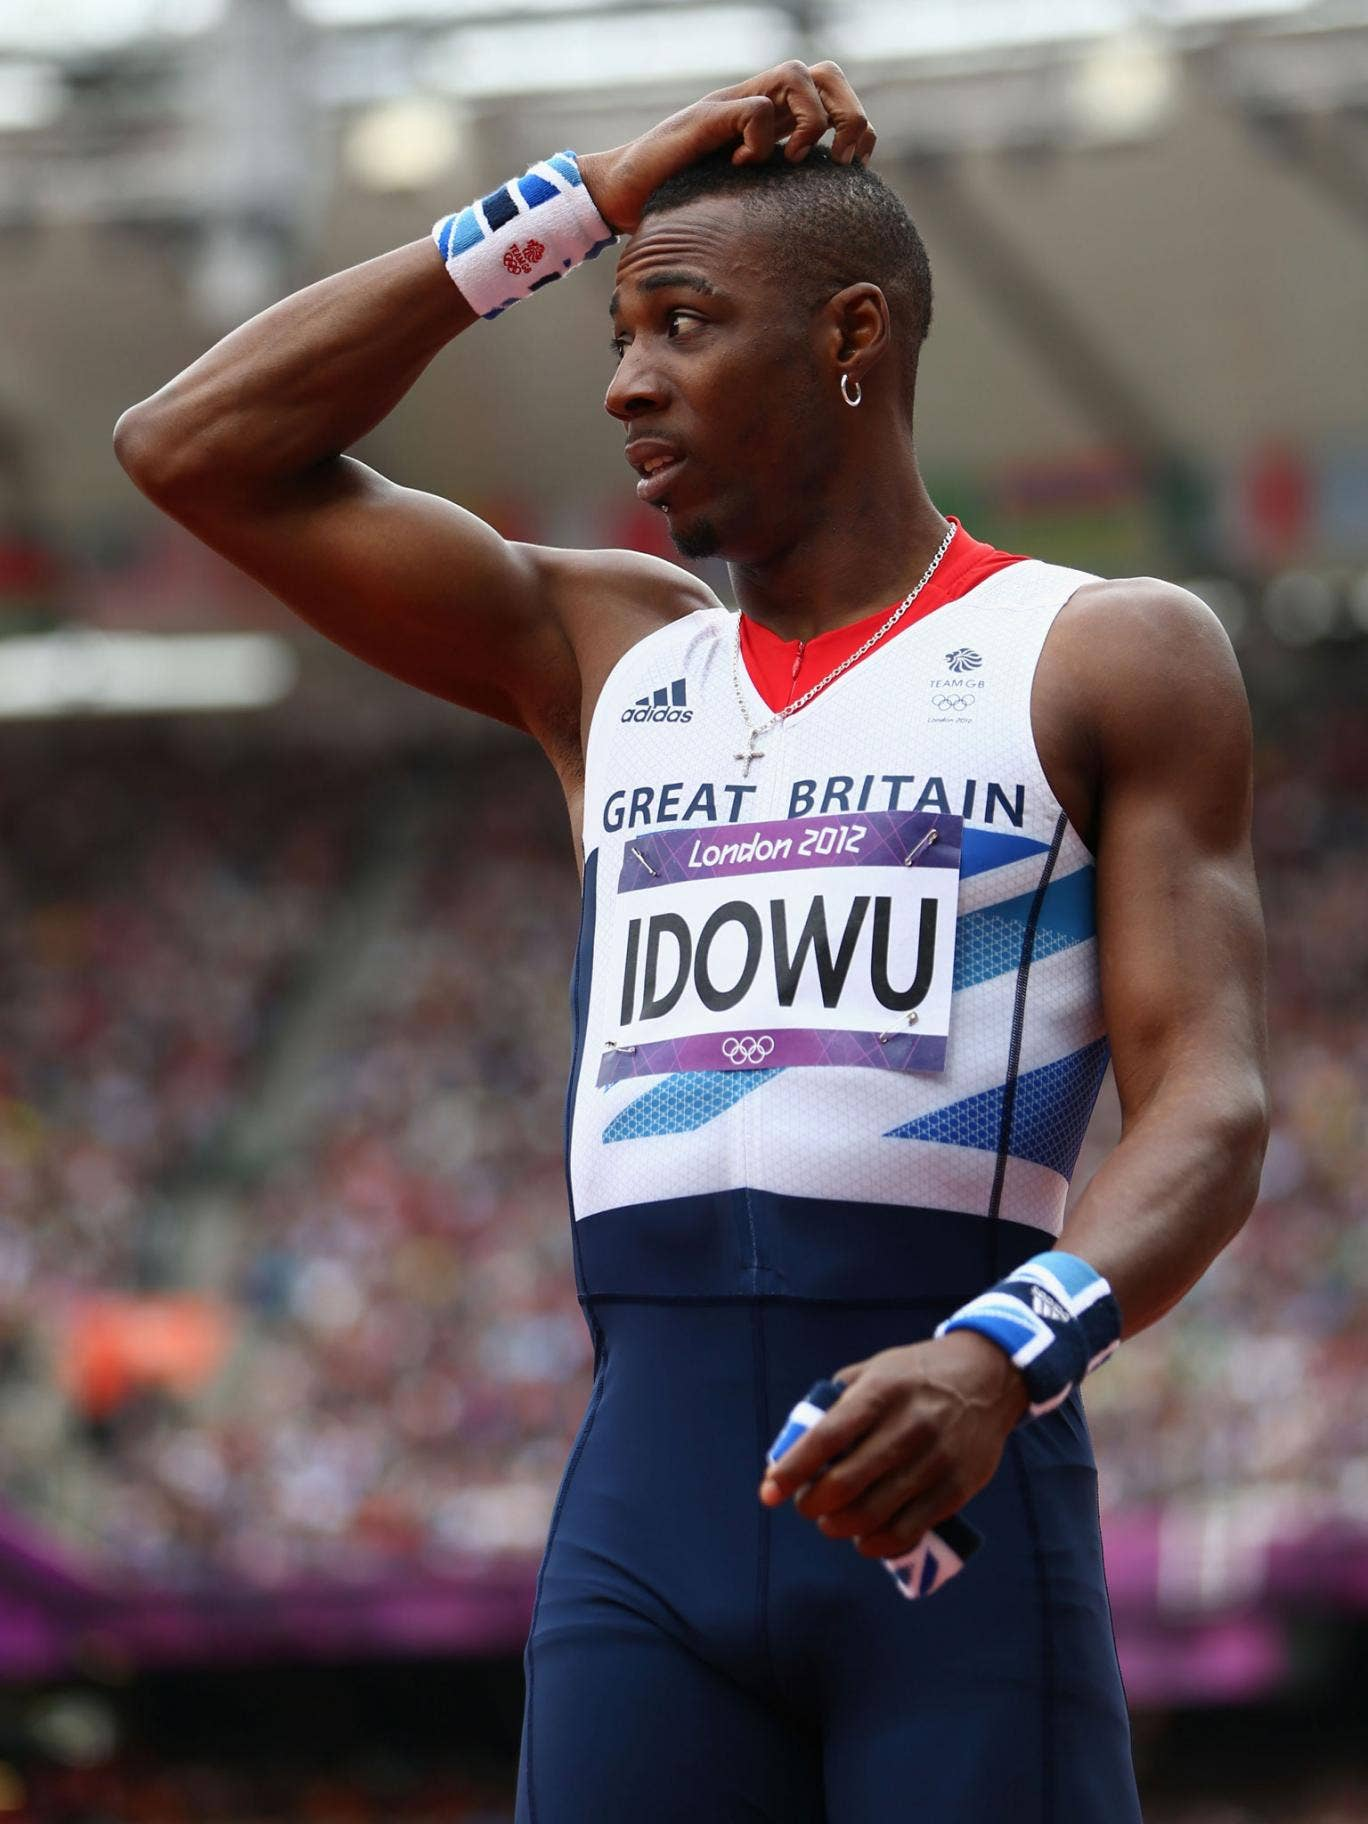 Phillips Idowu feels he let a lot of people down at the Olympics